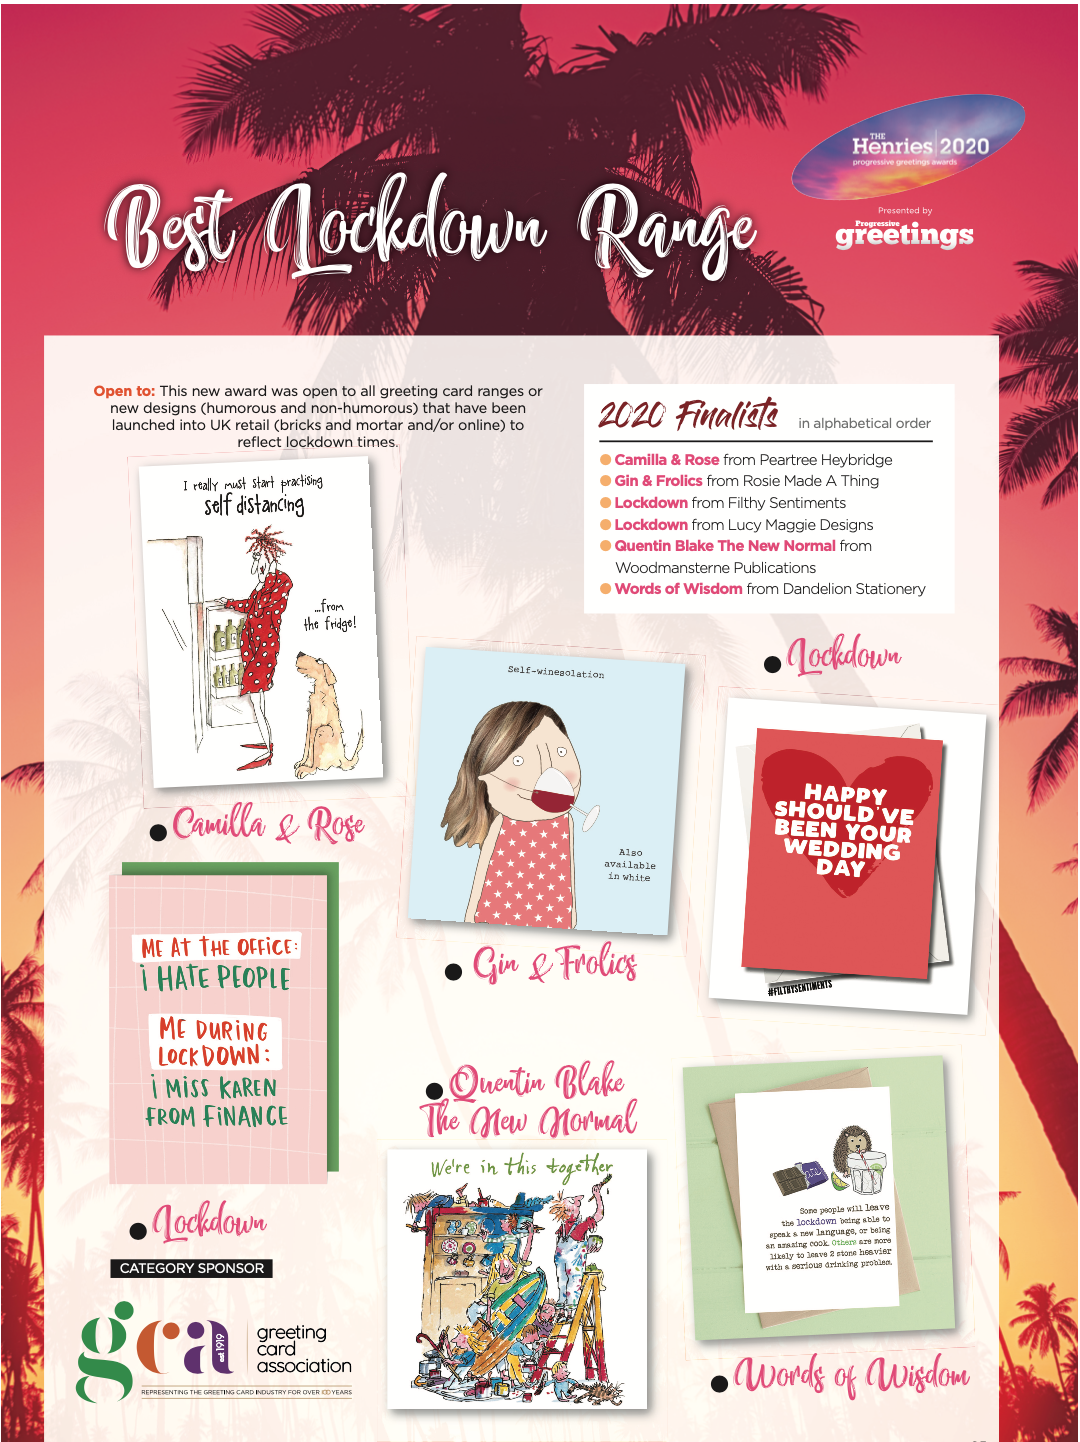 Above: The Best Lockdown range is a new award in The Henries for this year only, we sincerely hope. The finalists were featured in PG's October issue with the background being in keeping with the California Dreamin' theme of the event.